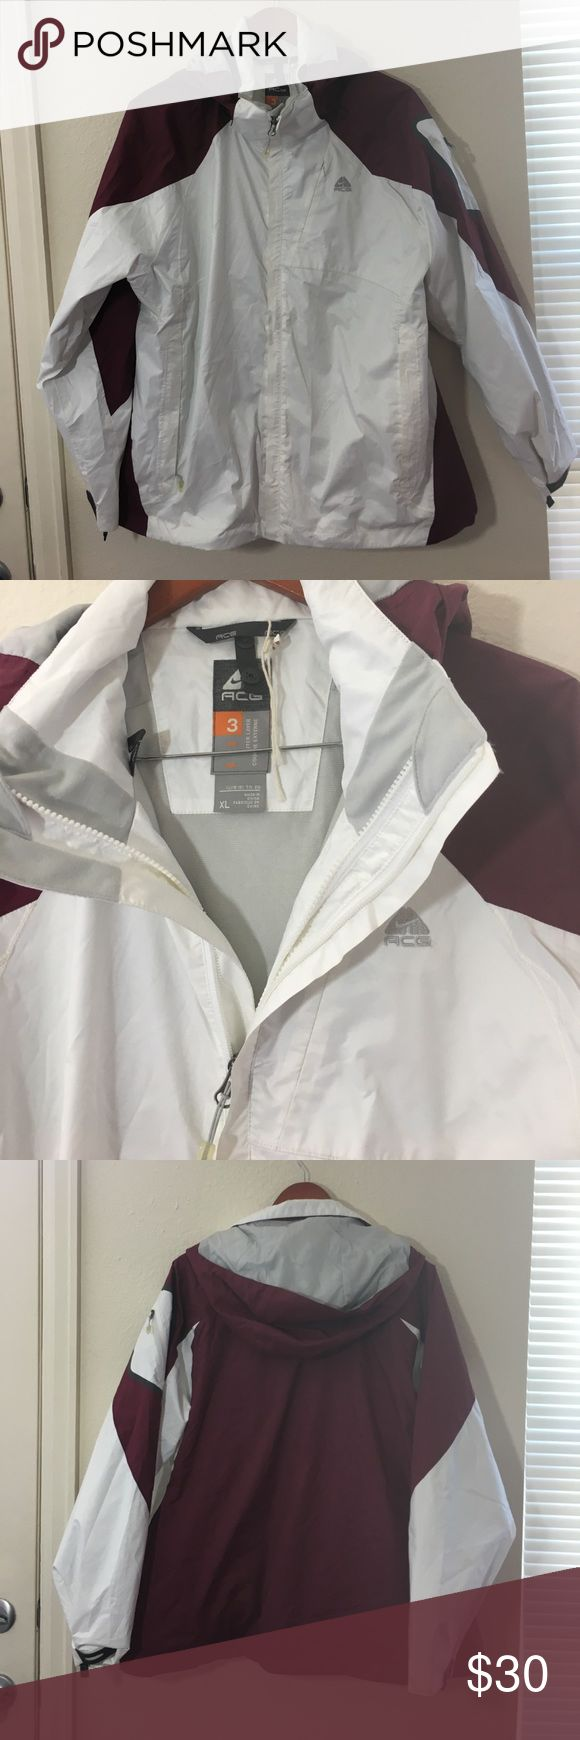 Nike acg winter coat Coat is actually an outer shell with zippers that allow you to zip any other coat inside. Nike Jackets & Coats Utility Jackets